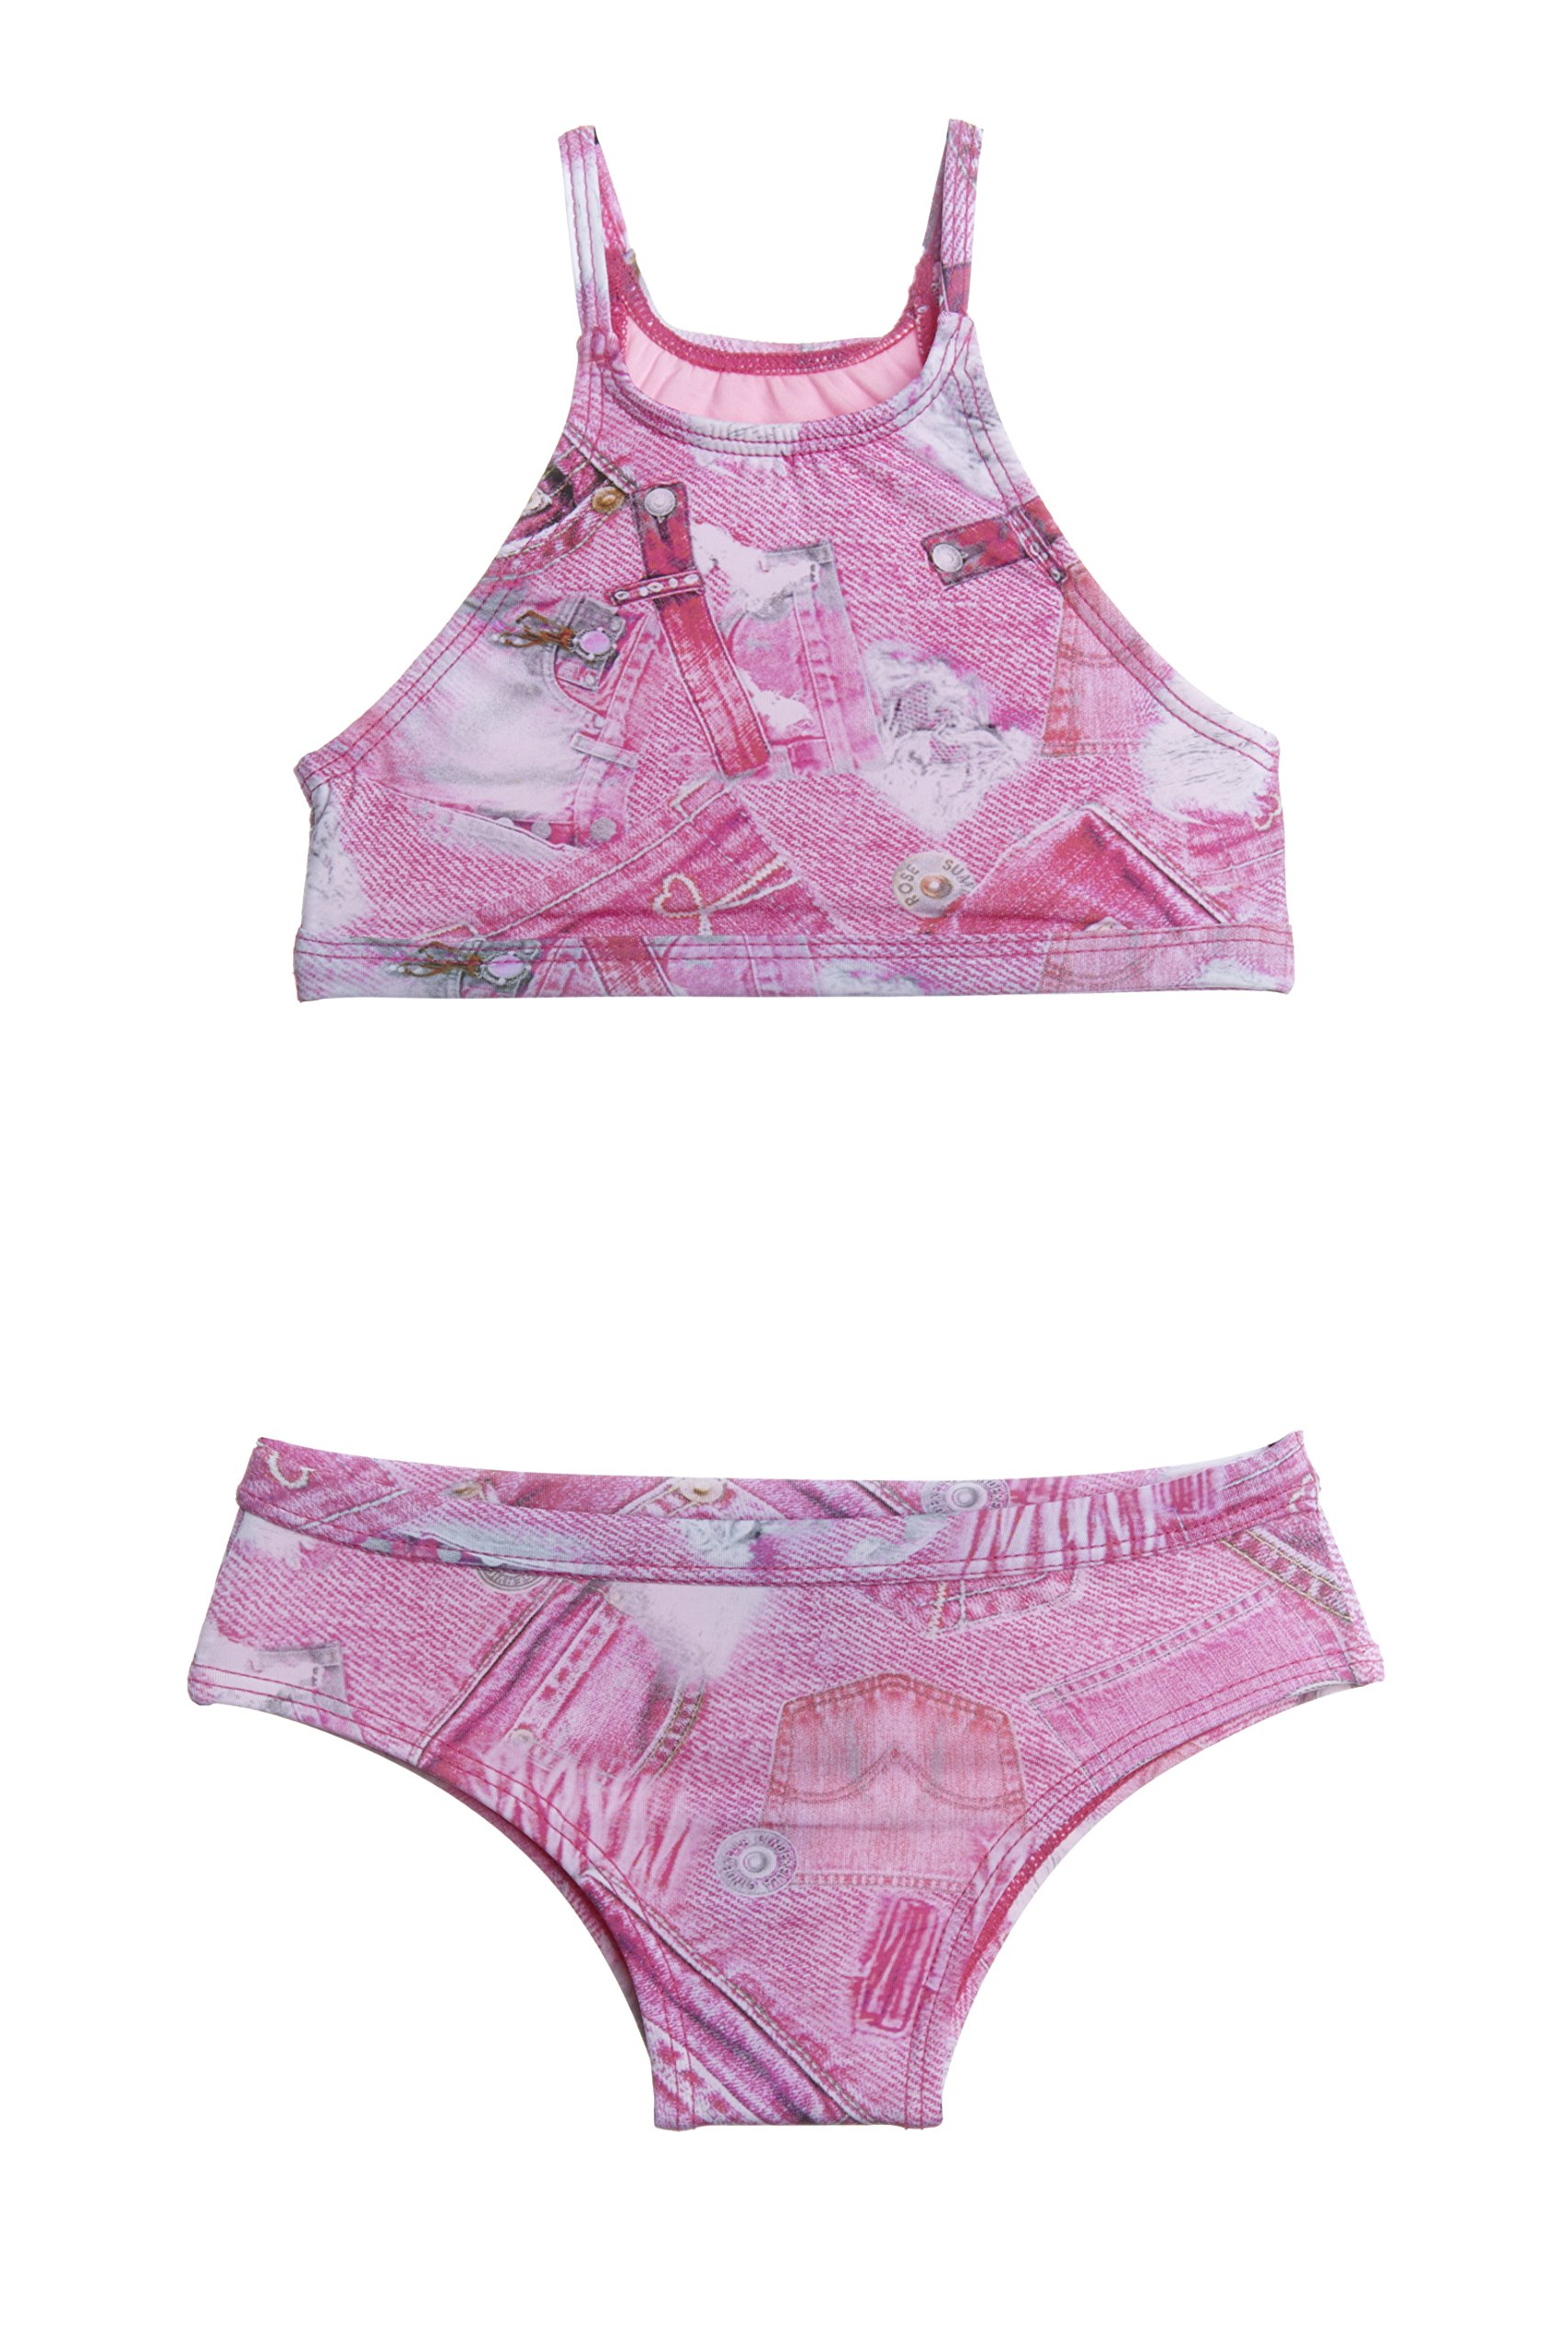 Denim Two Piece Pink Girls Swimsuit